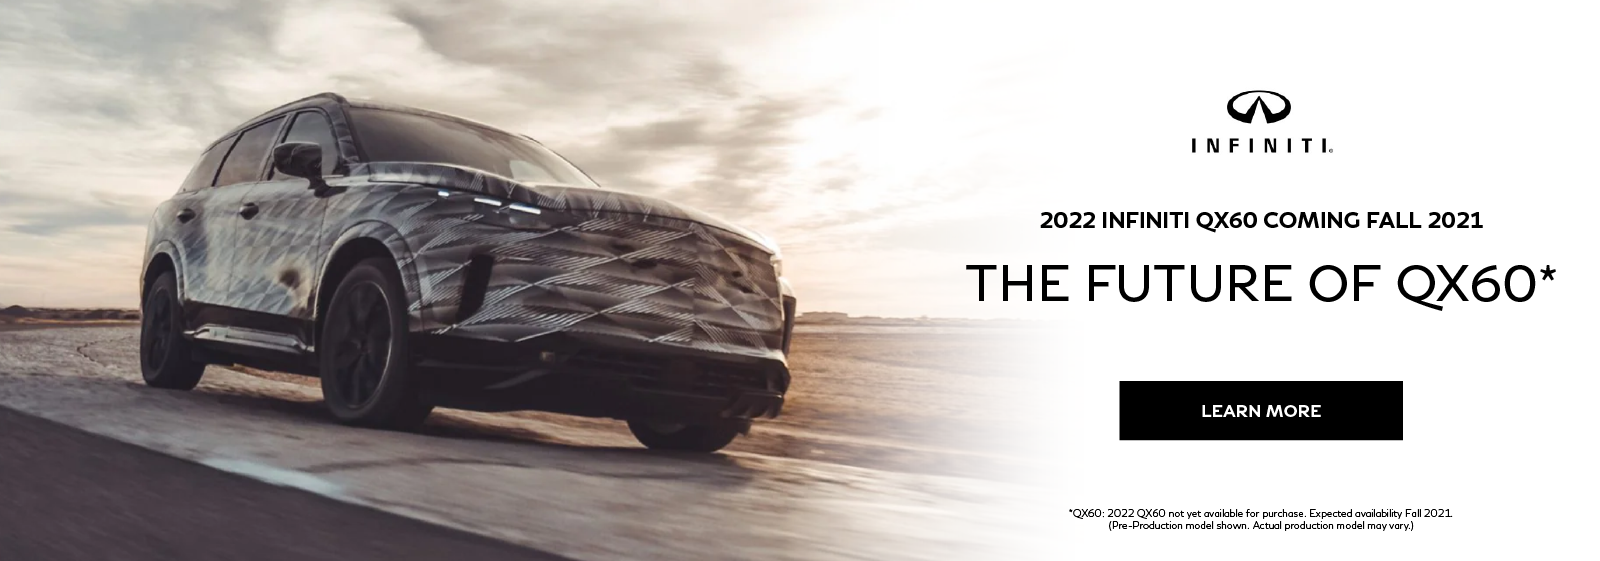 2022 INFINITI QX60. Be the first to know.